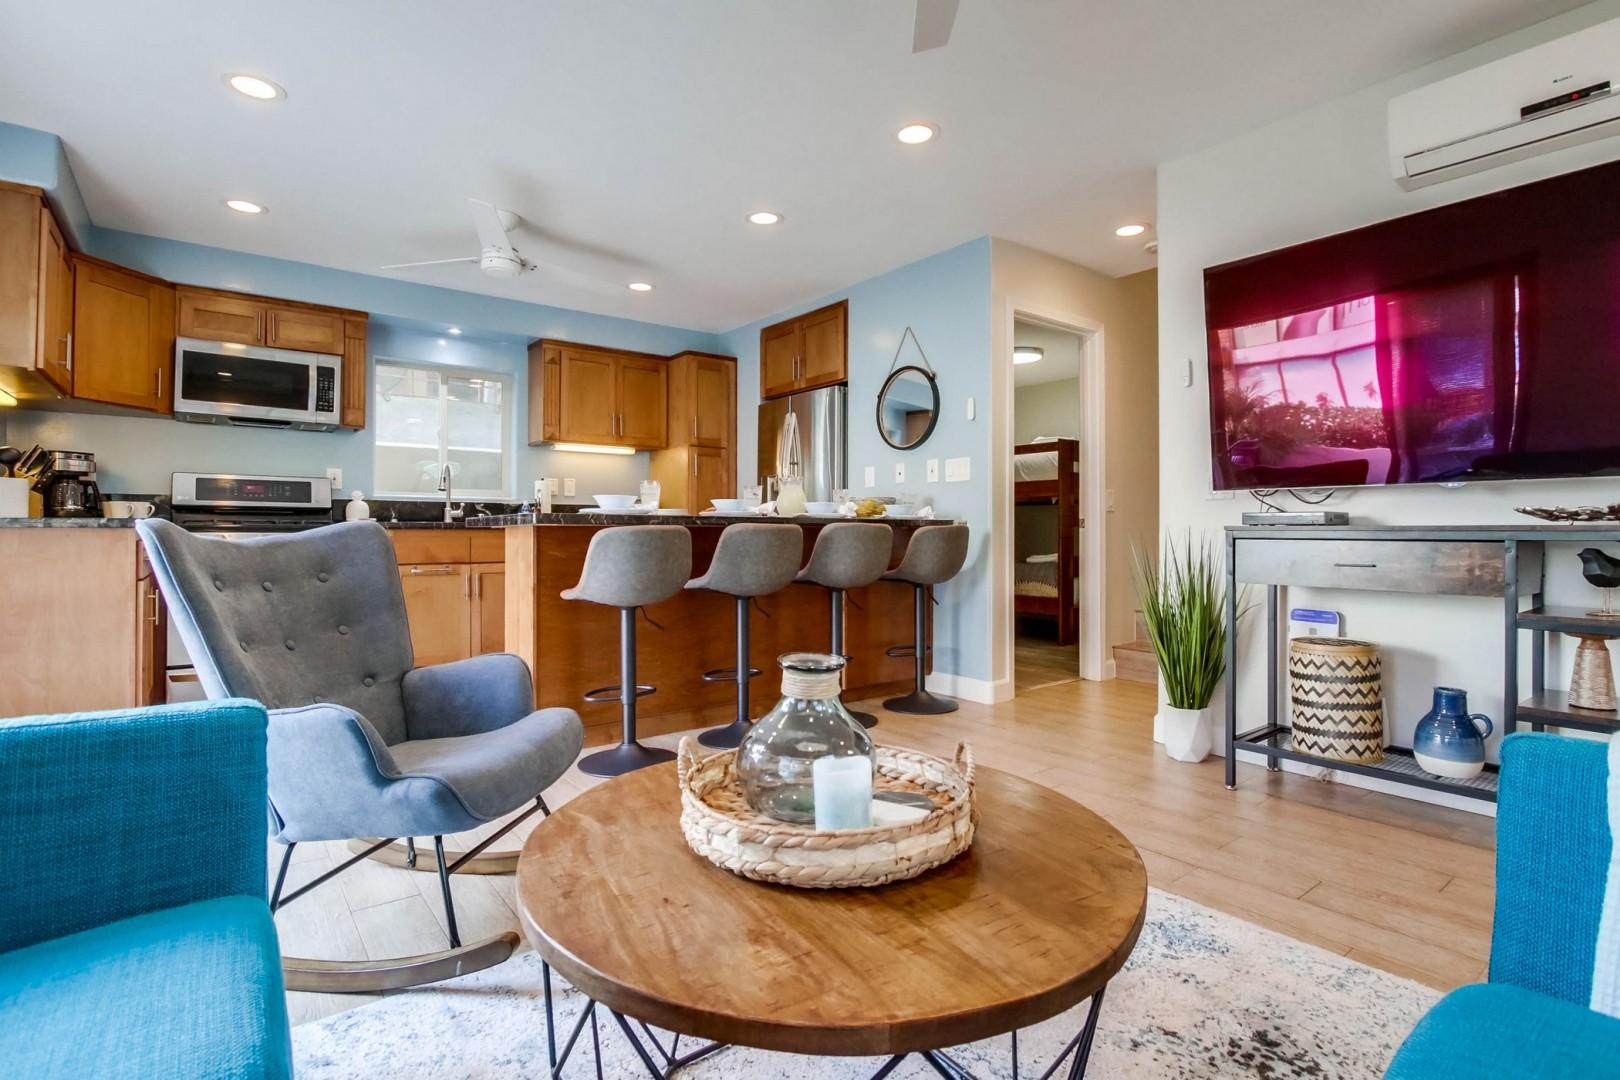 Living area with breakfast bar